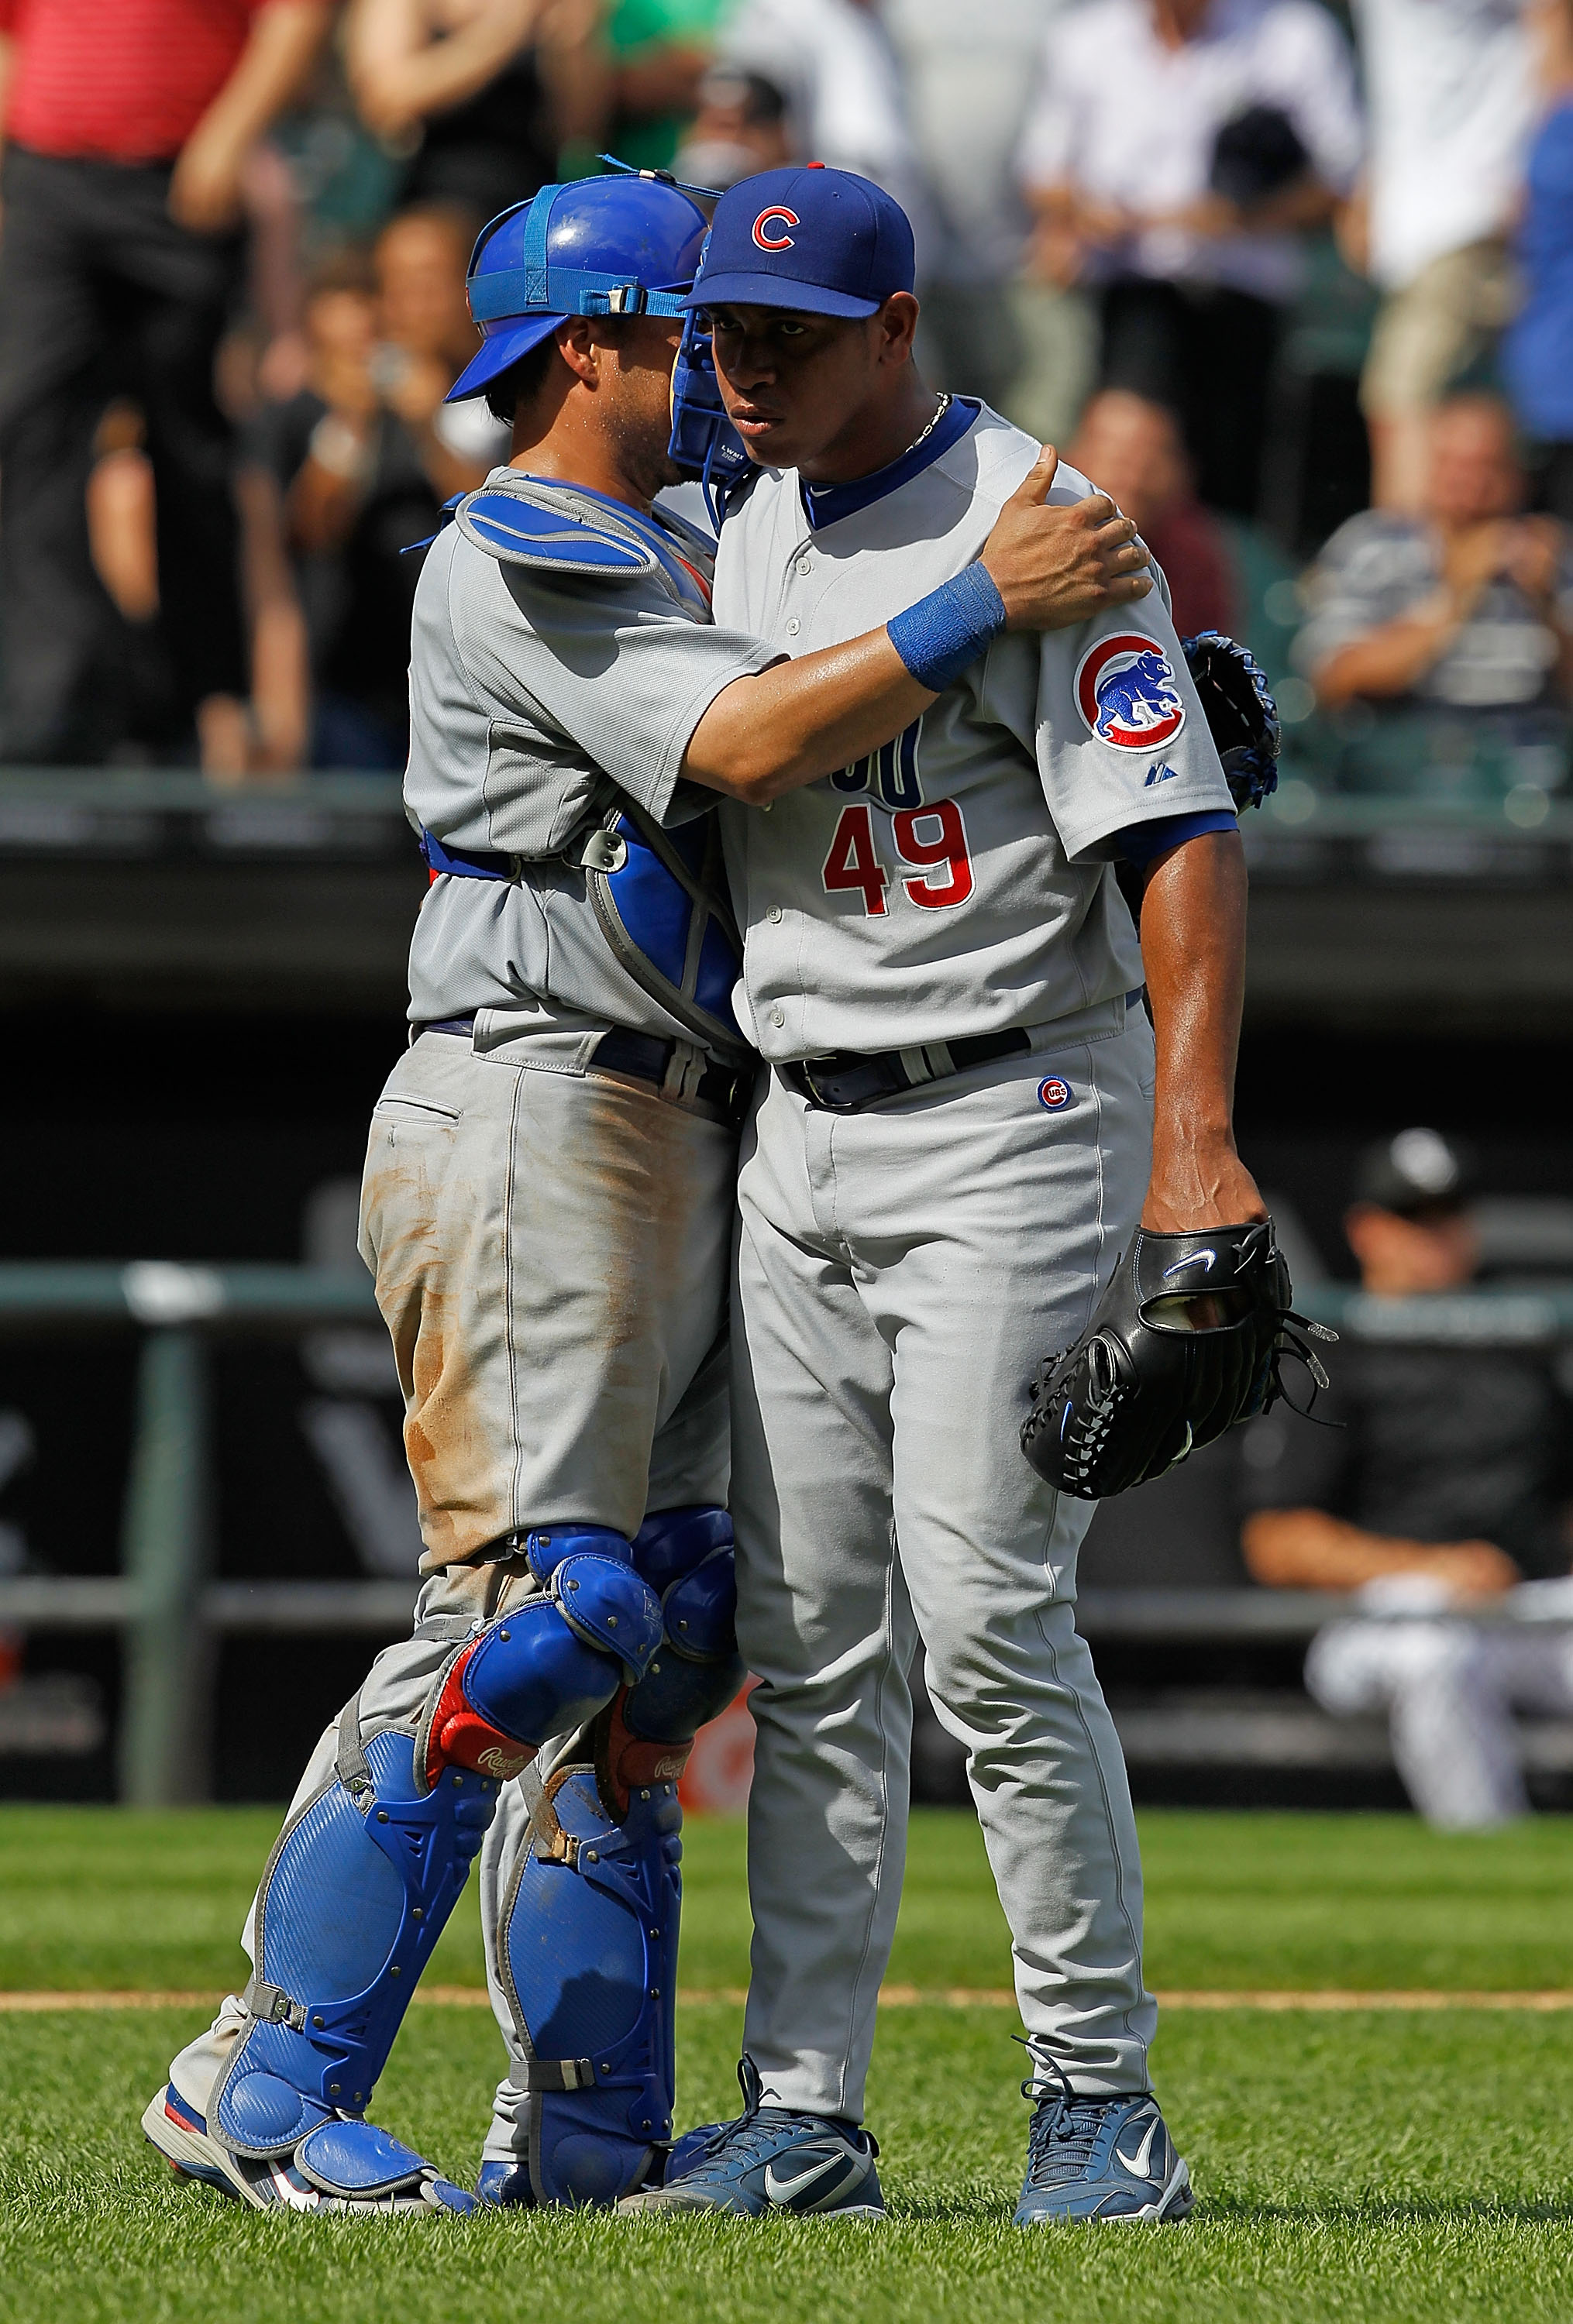 CHICAGO - JUNE 27: Geovany Soto #18 of the Chicago Cubs hugs pitcher Carlos Marmol #49 after a close win against the Chicago White Sox at U.S. Cellular Field on June 27, 2010 in Chicago, Illinois. The Cubs defeated the White Sox 8-6. (Photo by Jonathan Da